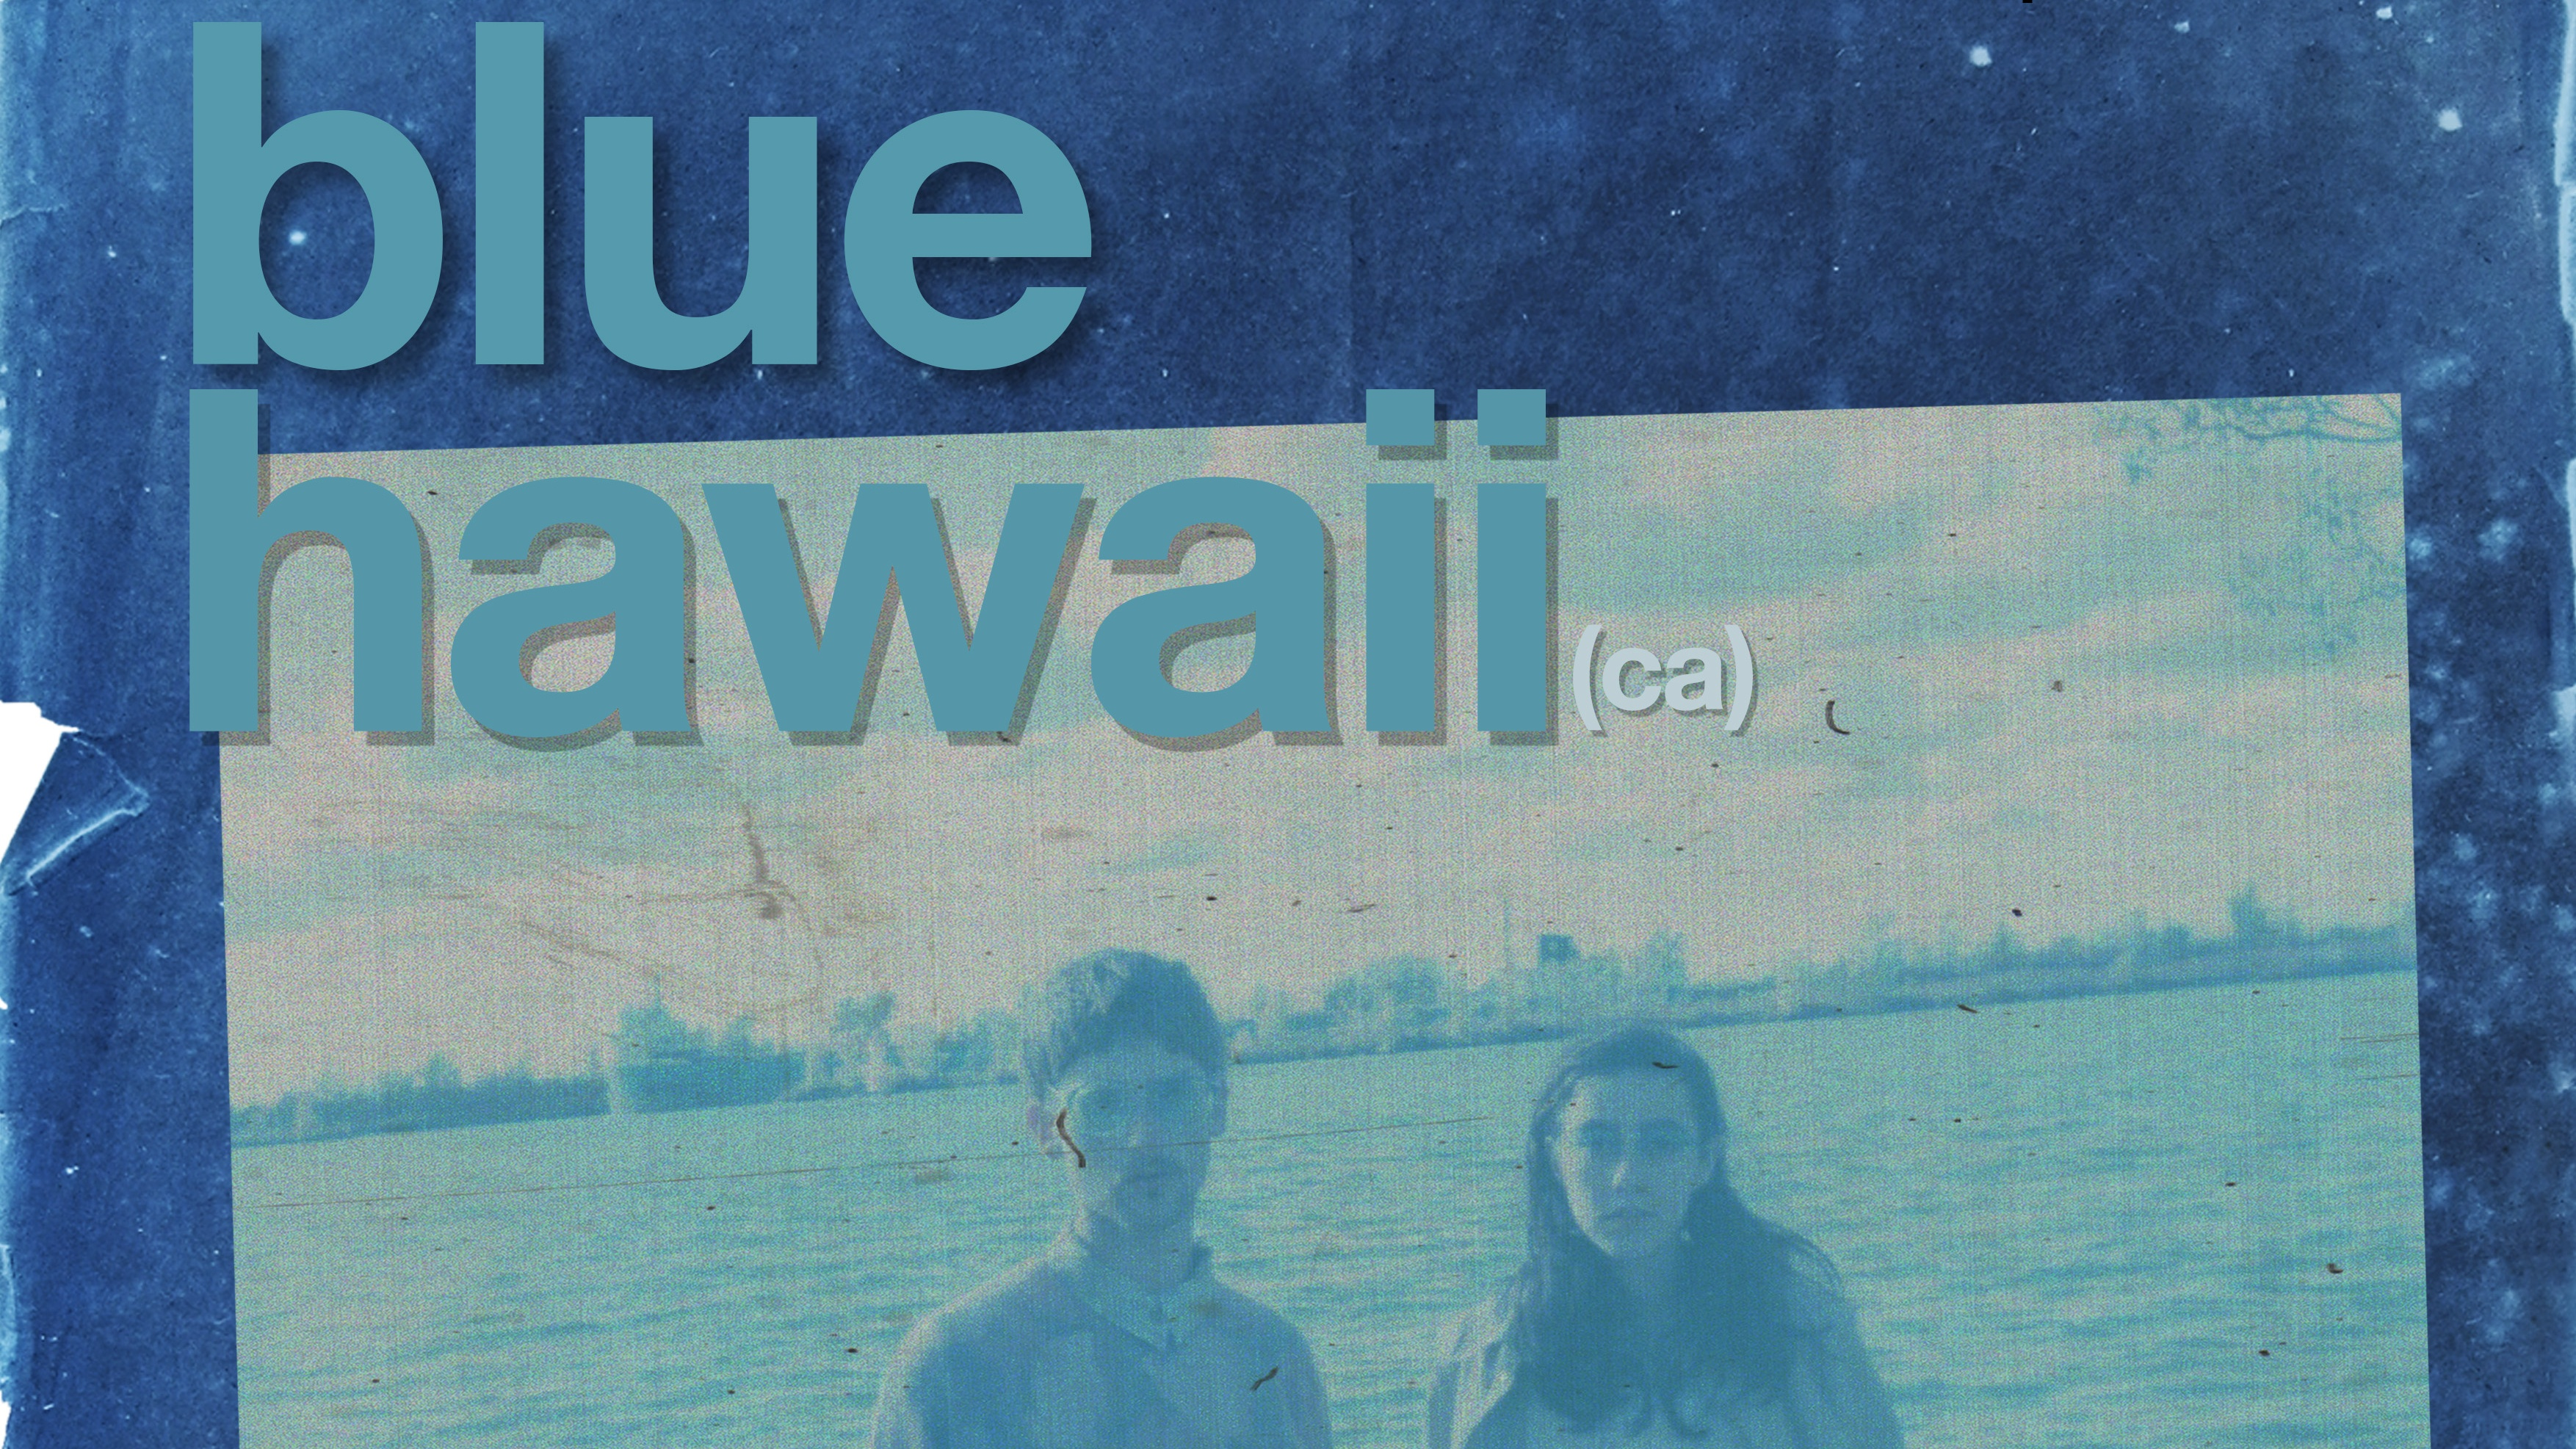 BLUE HAWAII (CAN) live in Singapore